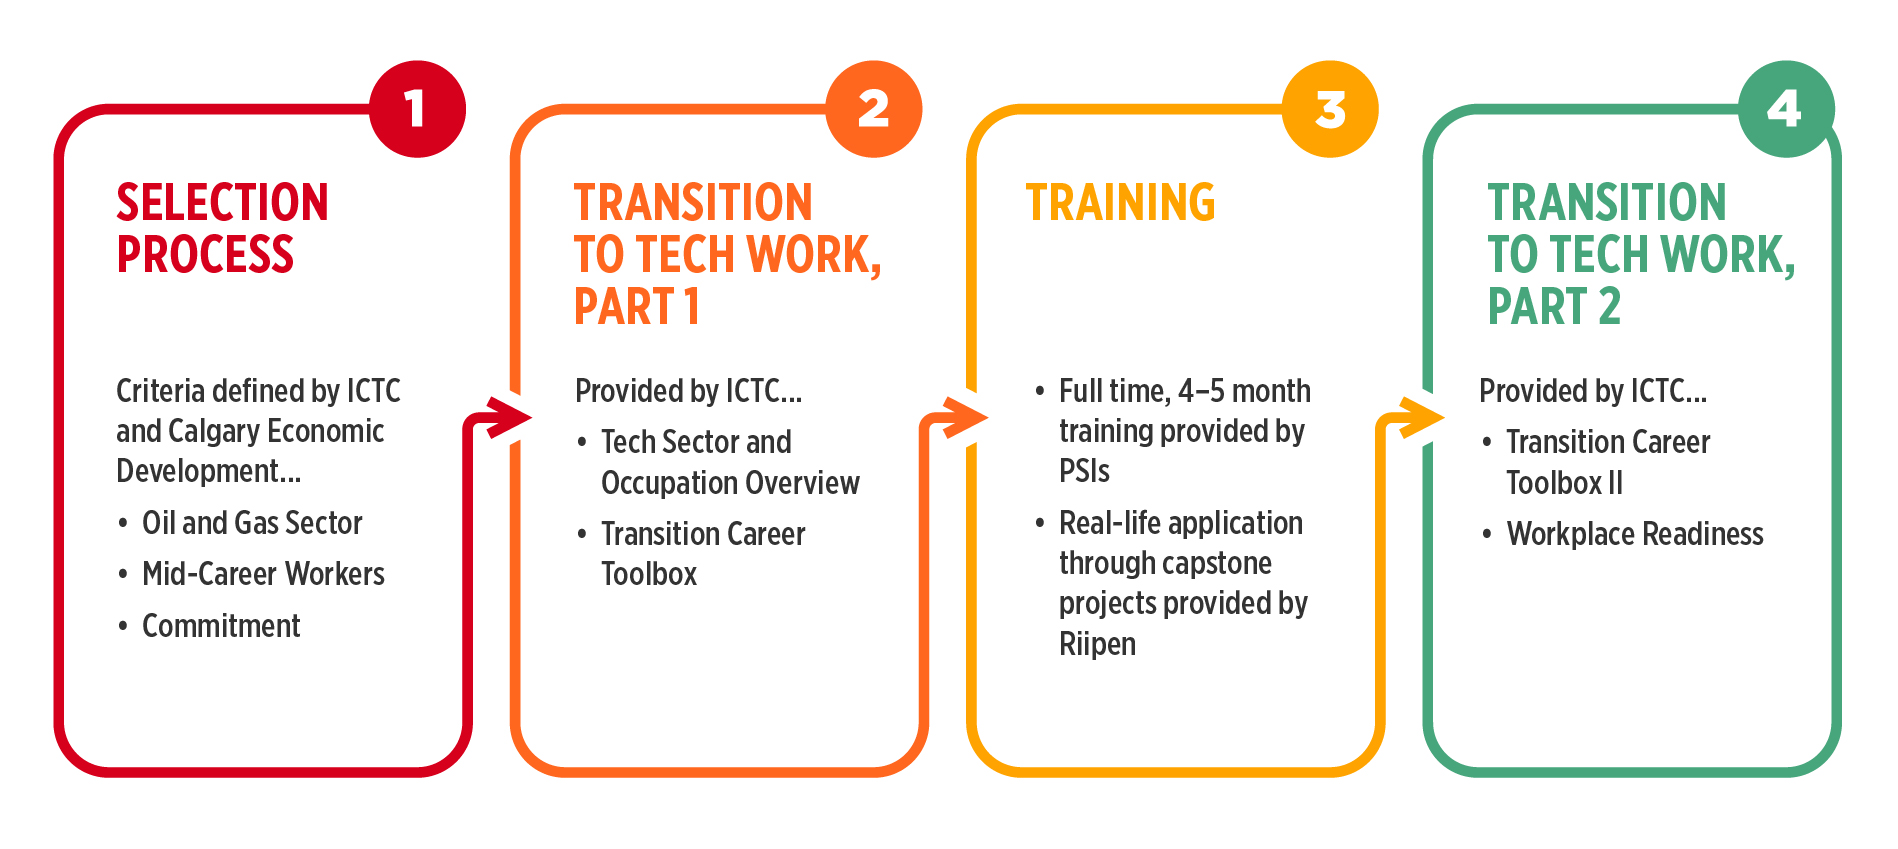 Four-step text-based diagram: Step 1: Selection process Step 2: Transition to Tech Work, Part I Step 3: Training Step 4: Transition to Tech Work, Part II